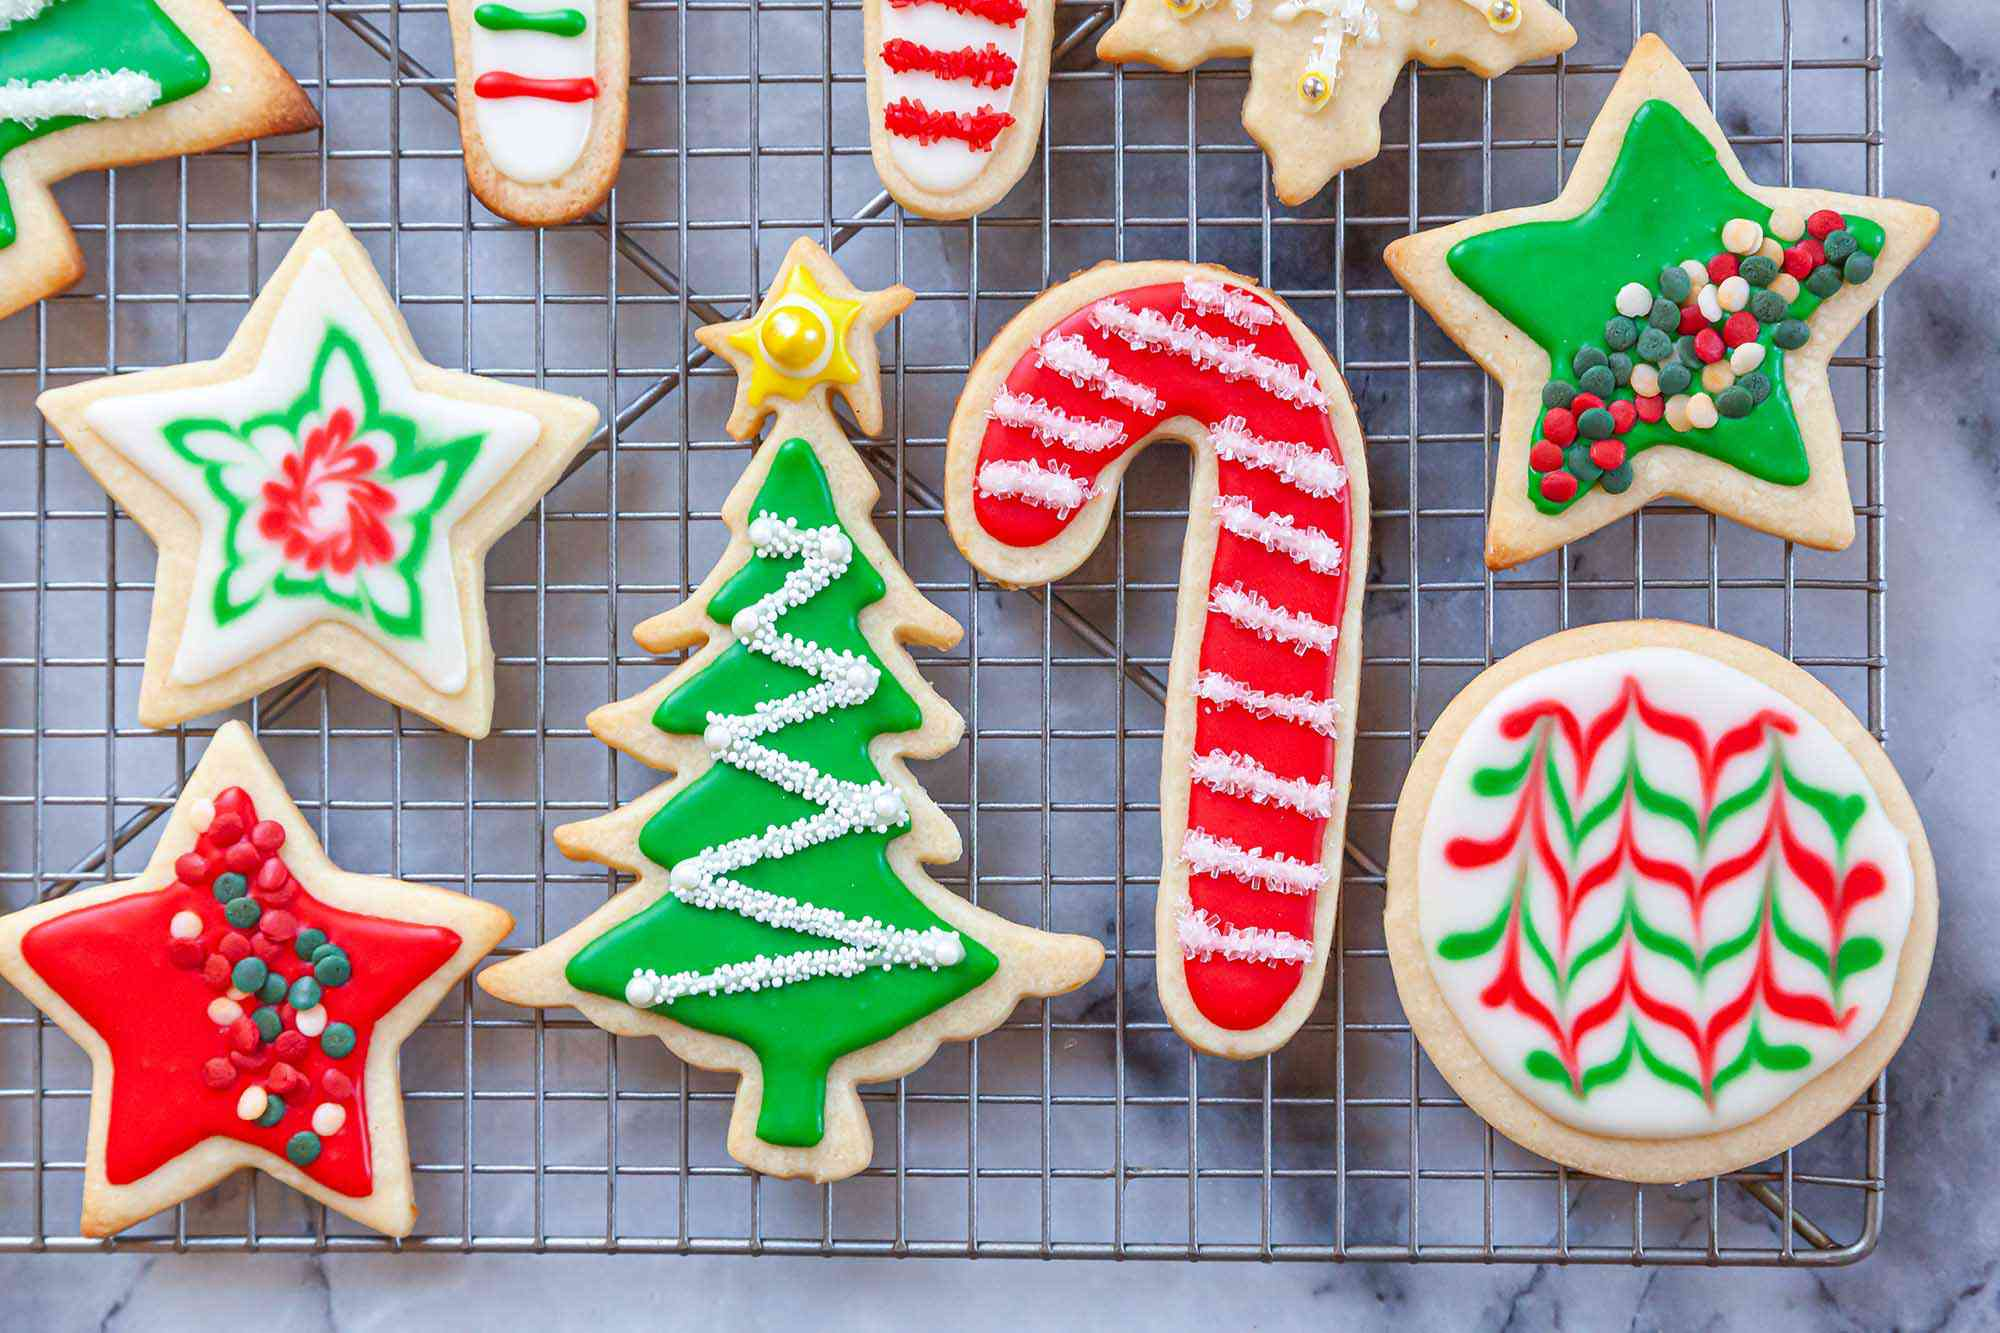 Cooling rack with festive cookies decorated with Royal icing and sprinkles.